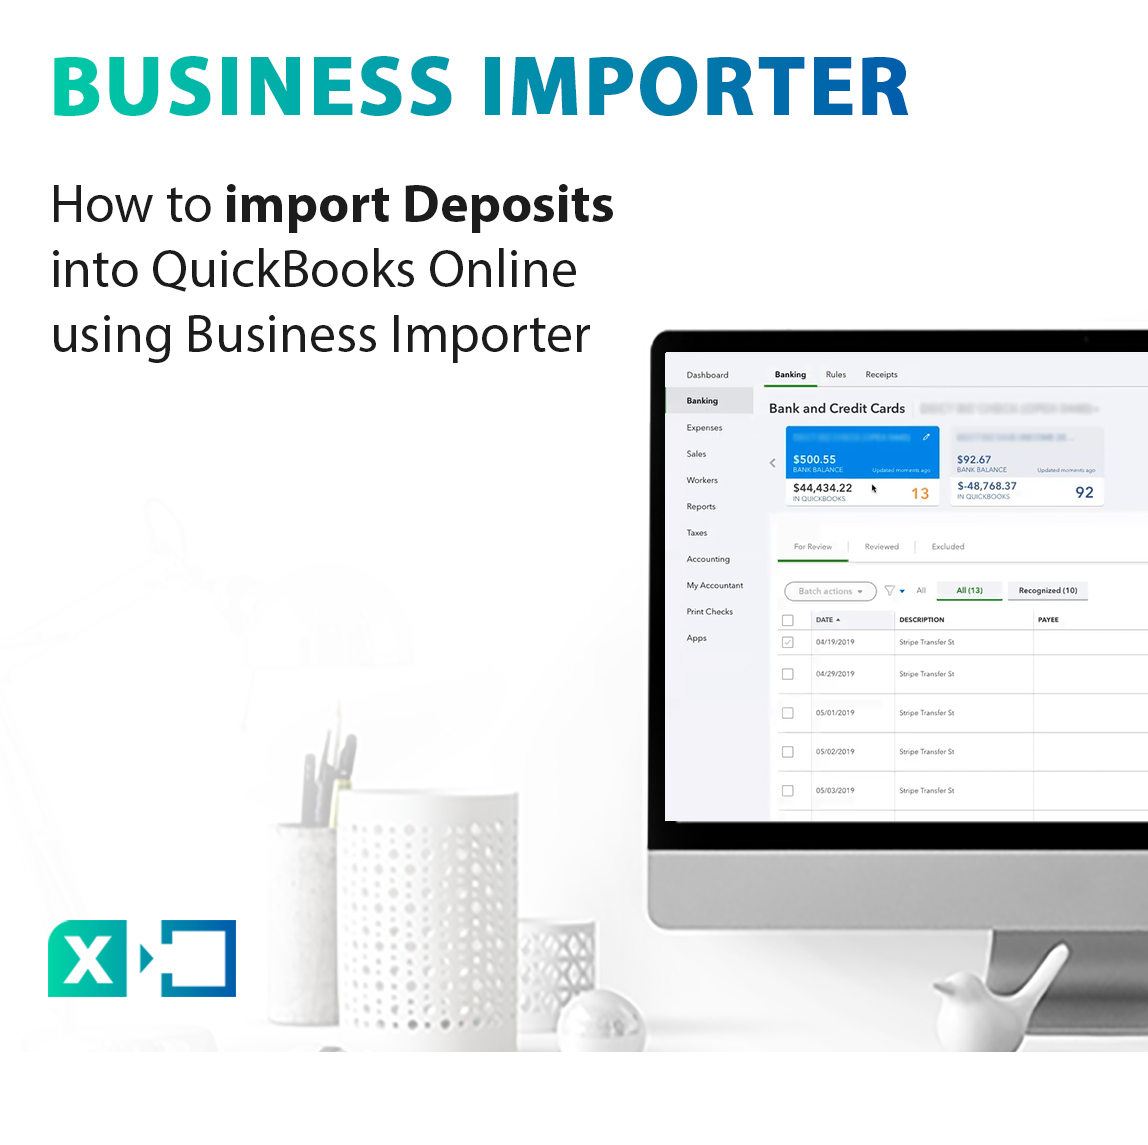 How to import Deposits into QuickBooks Online with Business Importer